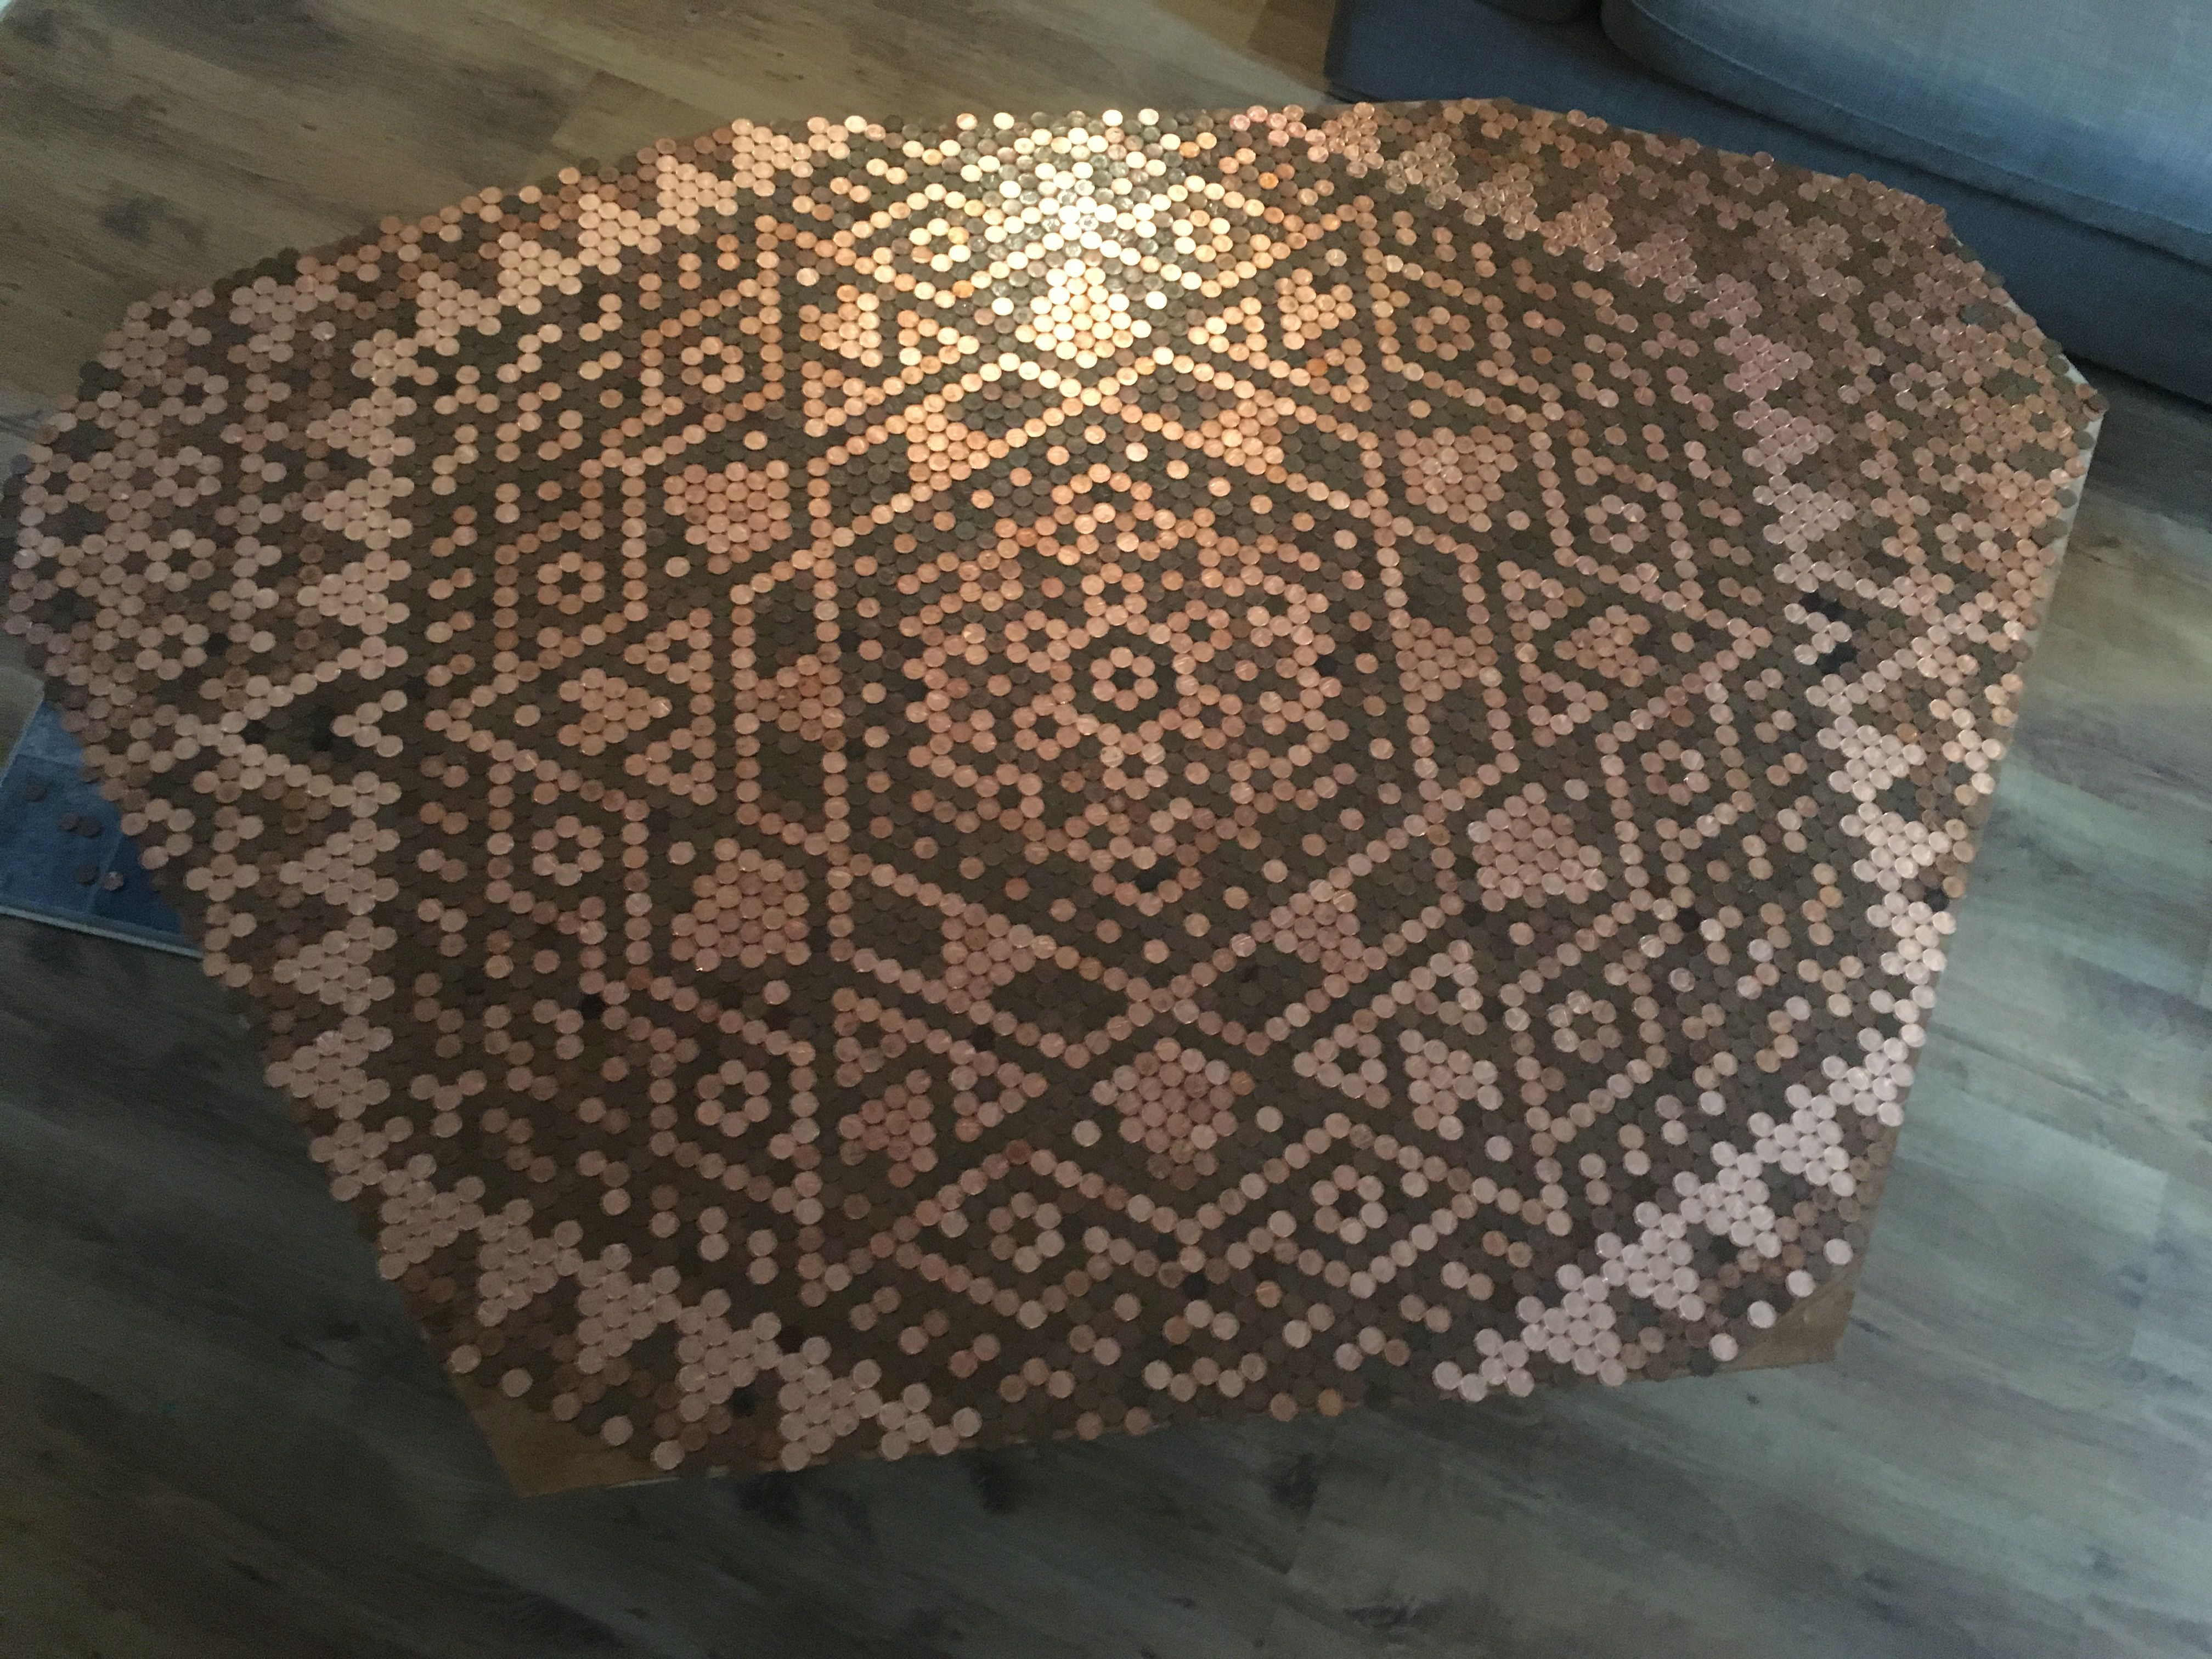 Fußboden Aus Pennys ~ Penny table design by @hugart for the home pinterest penny